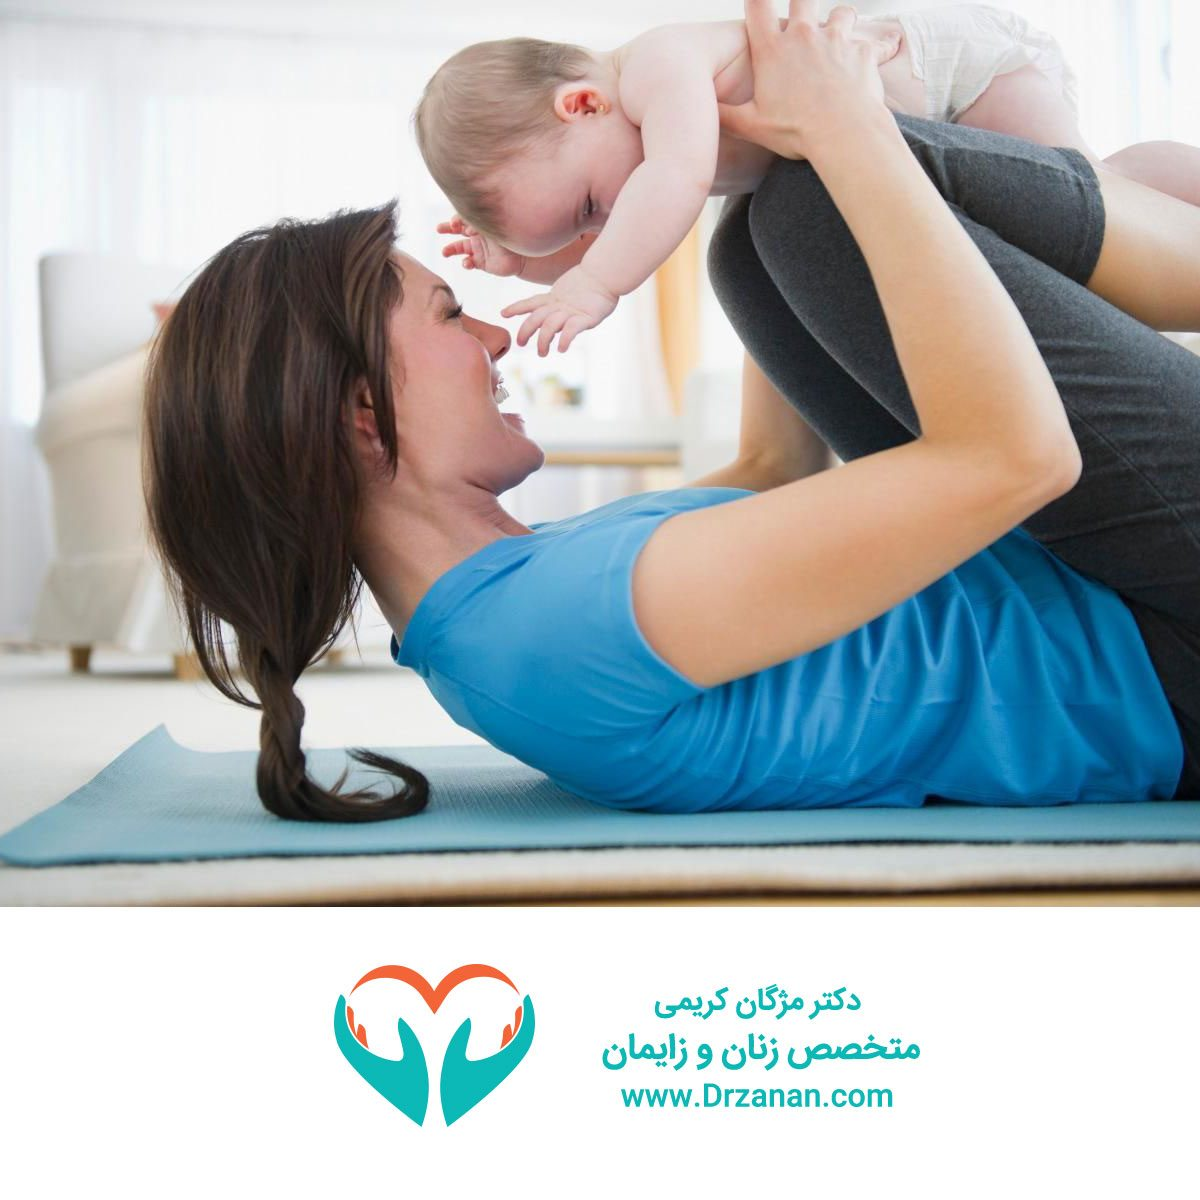 what-to-do-to-control-weight-before-pregnancy-2-1200x1200.jpg